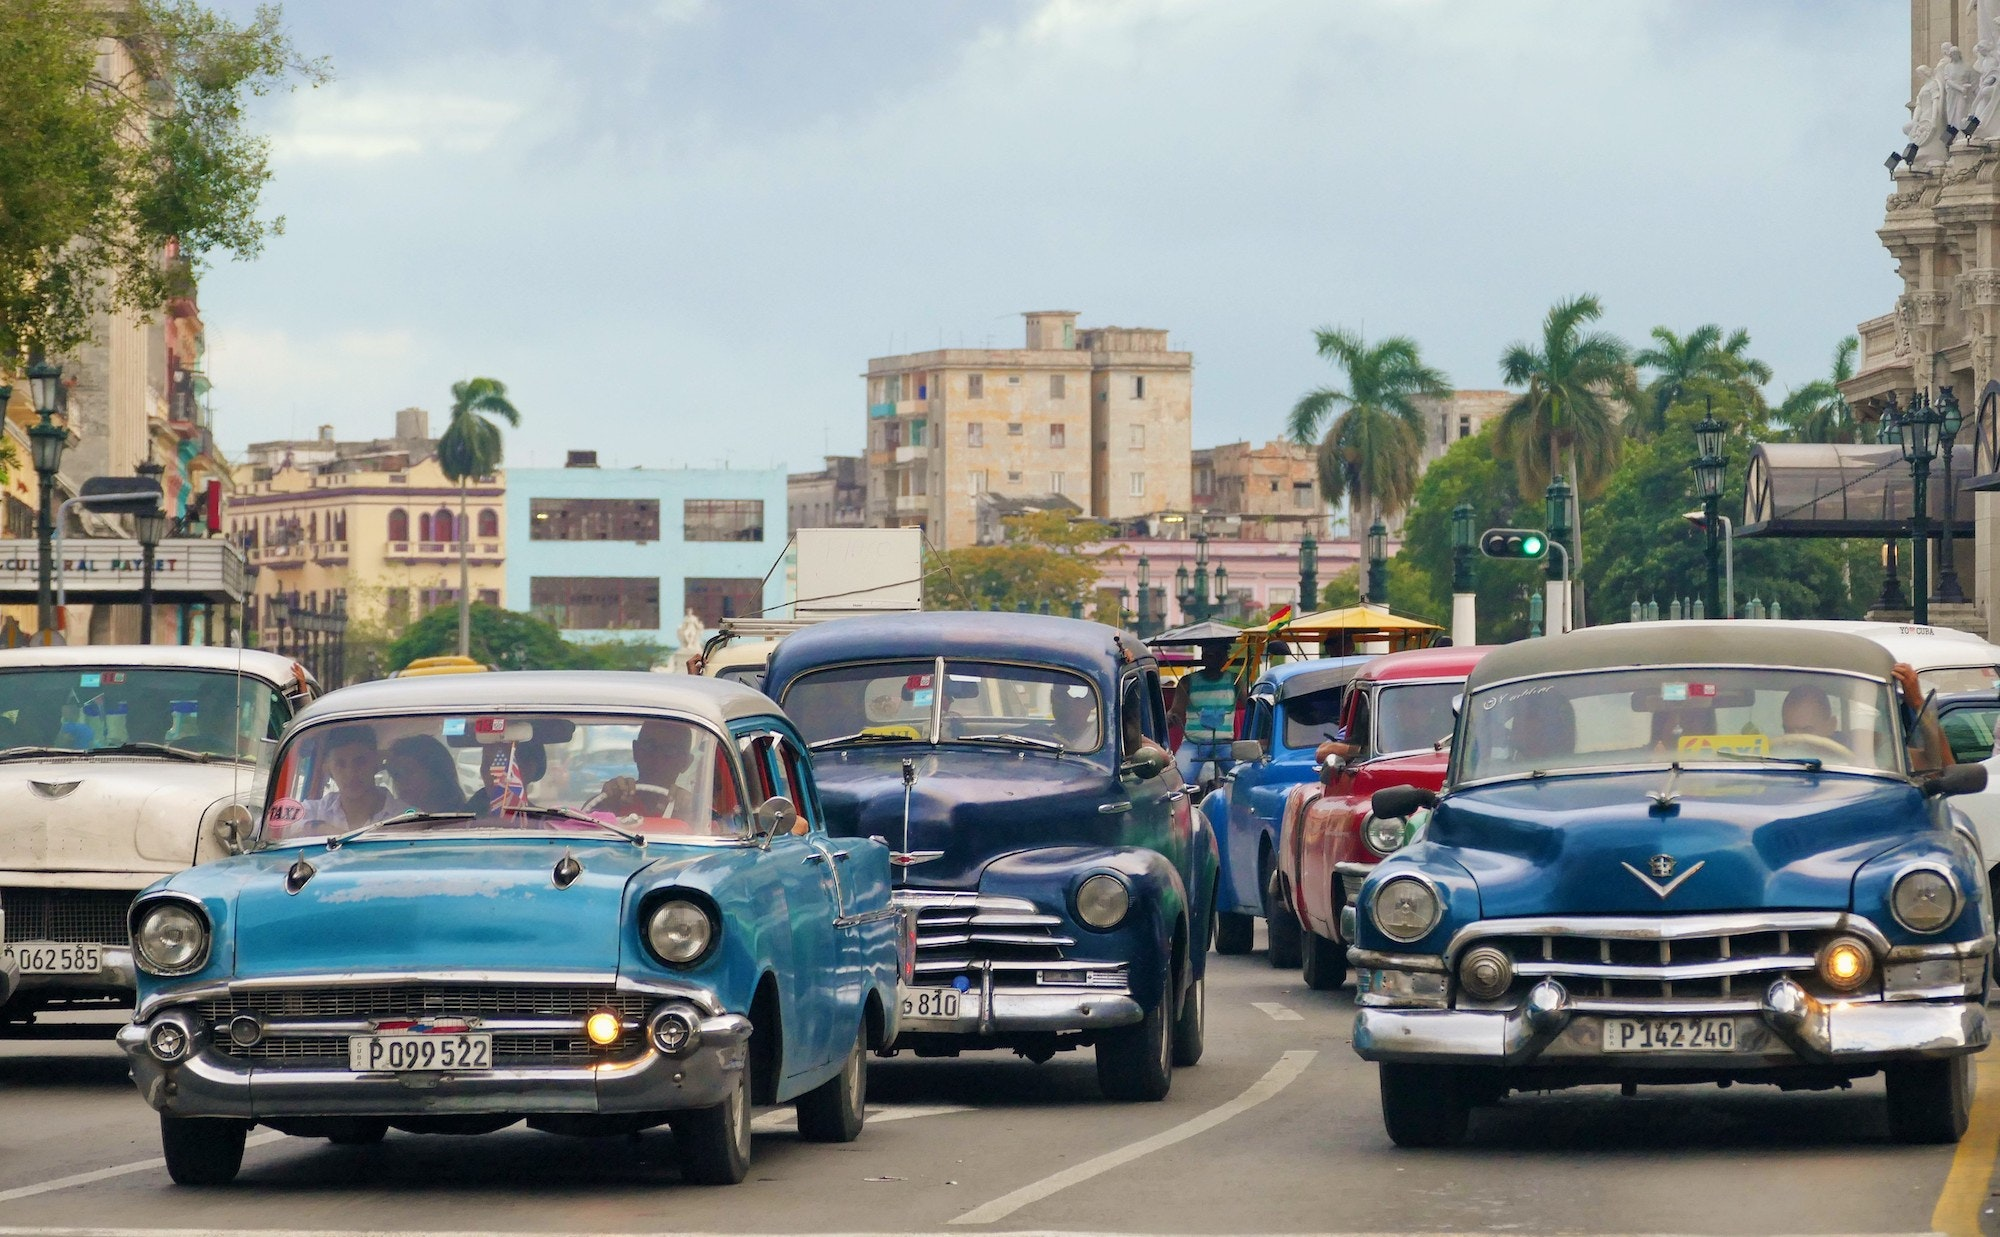 What Does Trump S Travel Policy Mean For Travel To Cuba